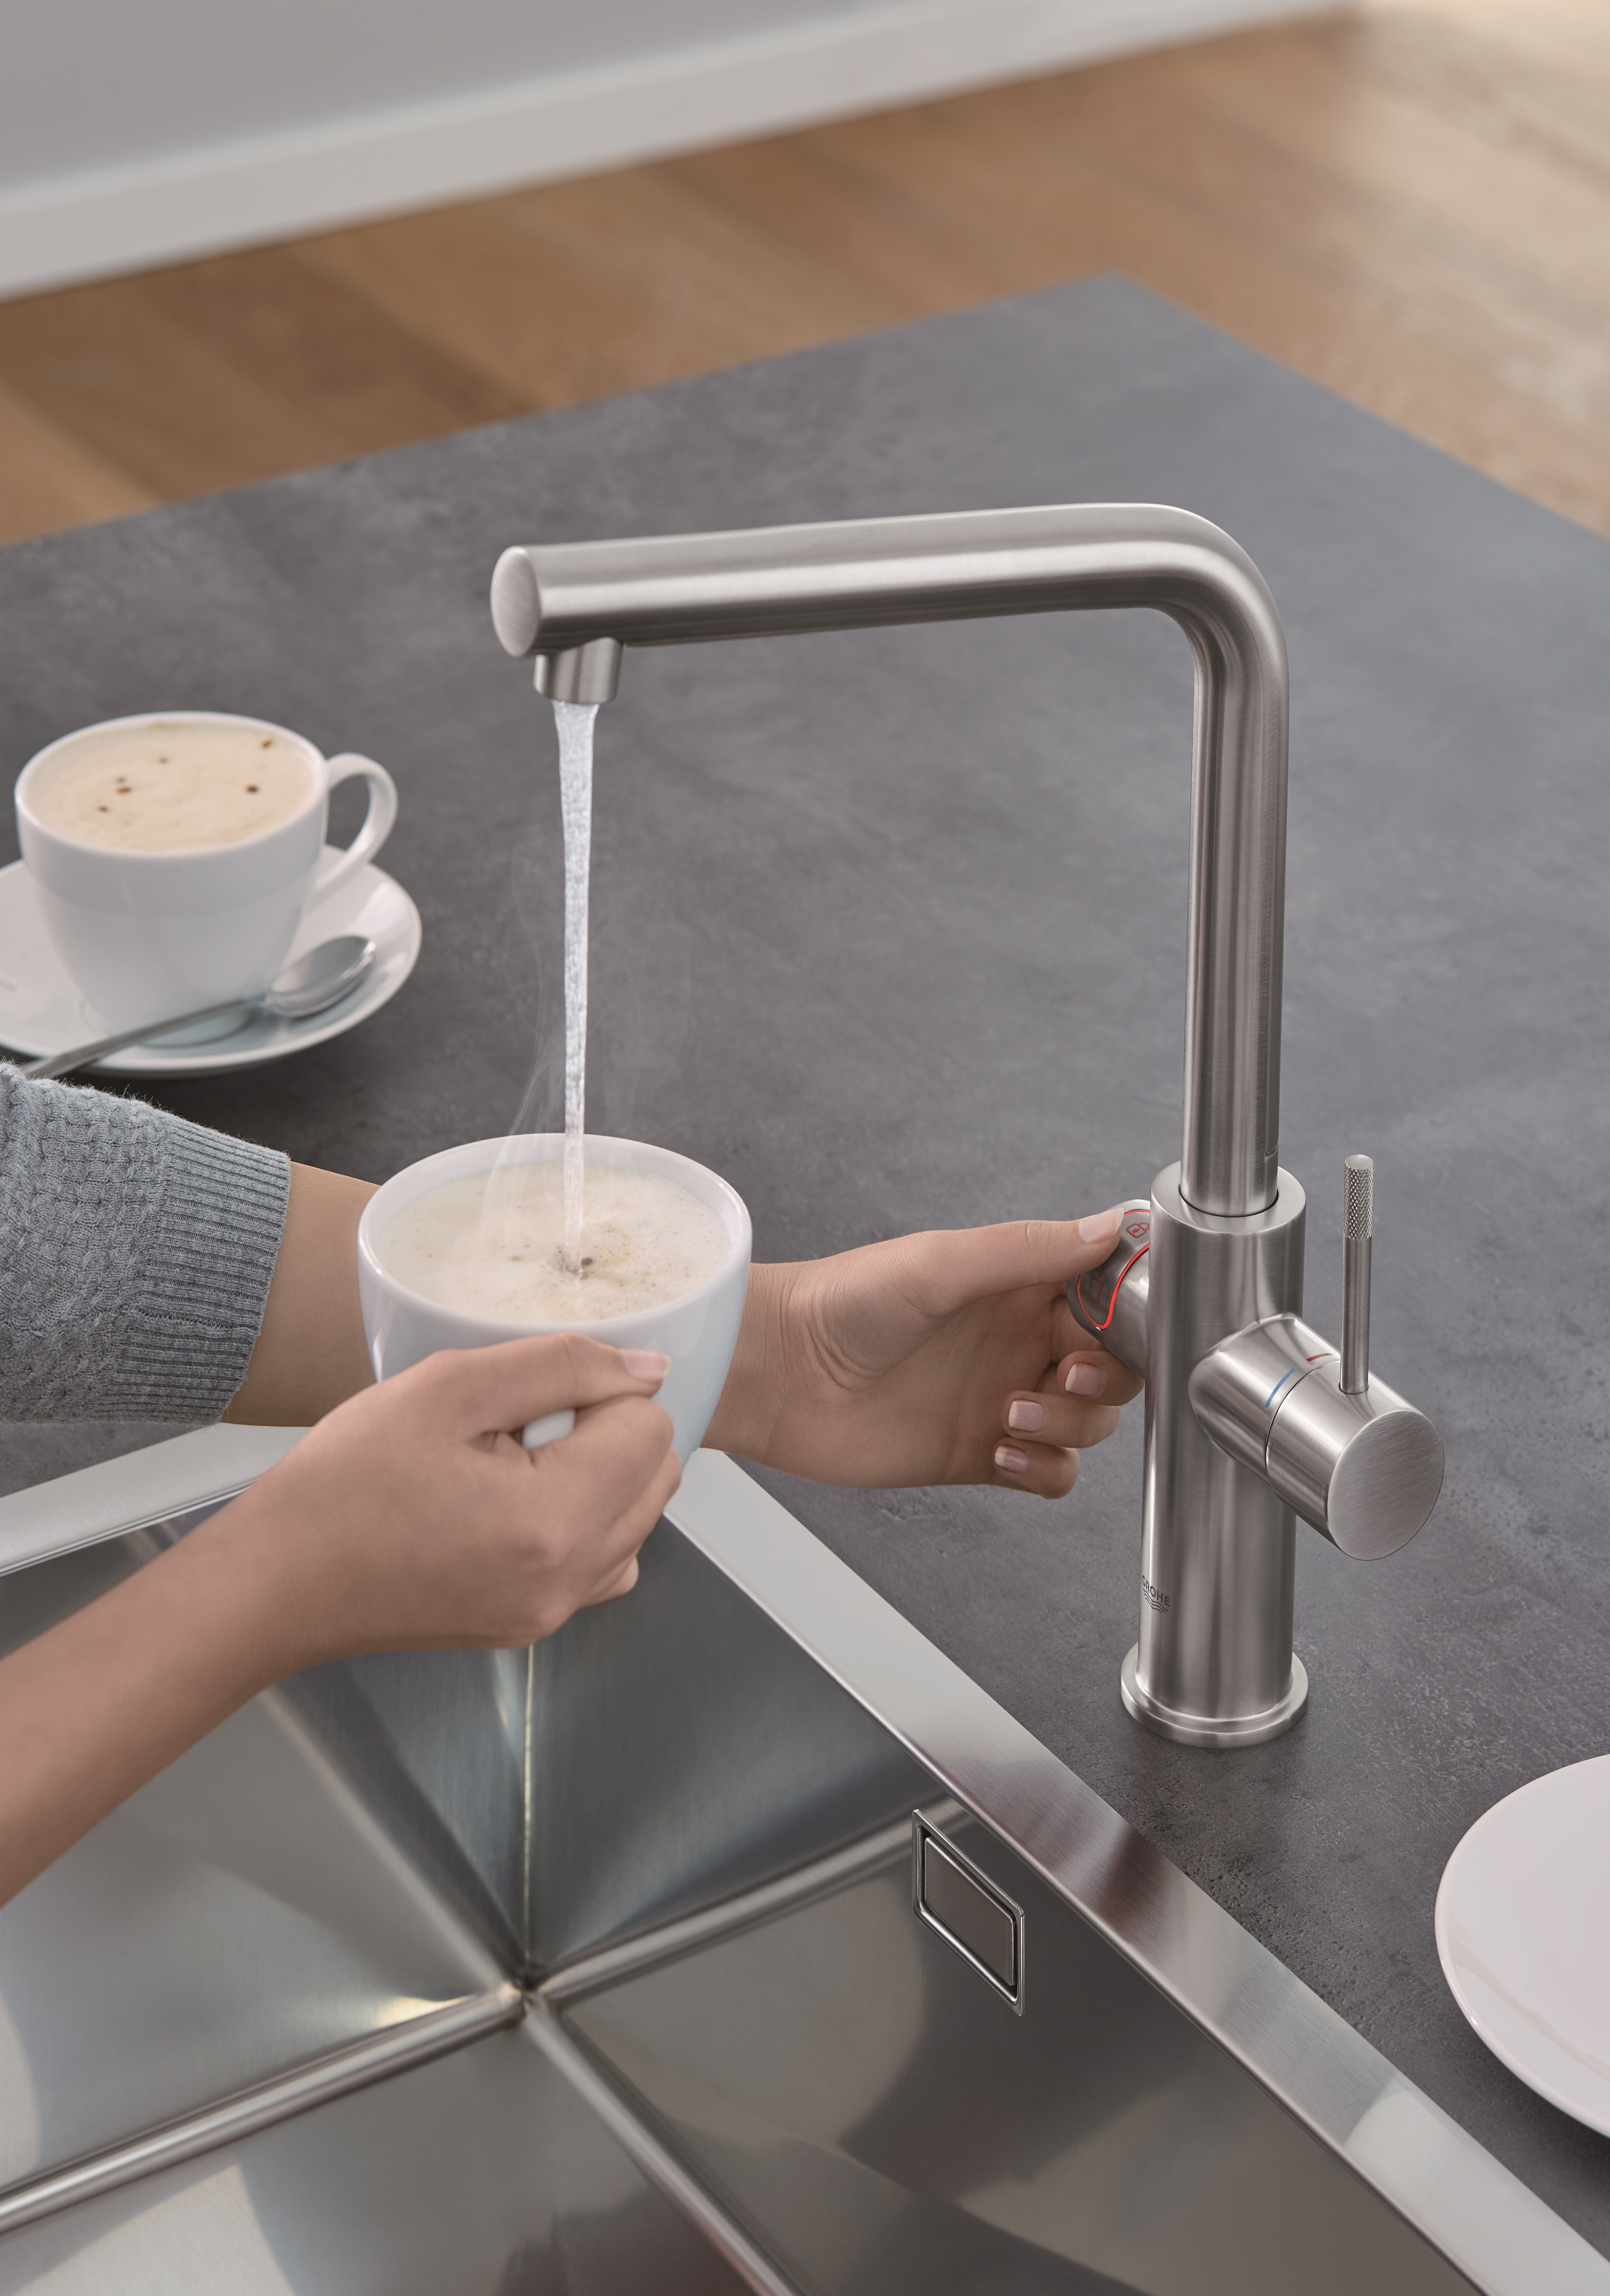 Delicieux Have You Ever Got The Hot Water For Your Coffe Right From The Sink? GROHE  Red Makes It Possible! #GROHERed #GROHE #red #water #boiling #coffe  #waterlove # ...